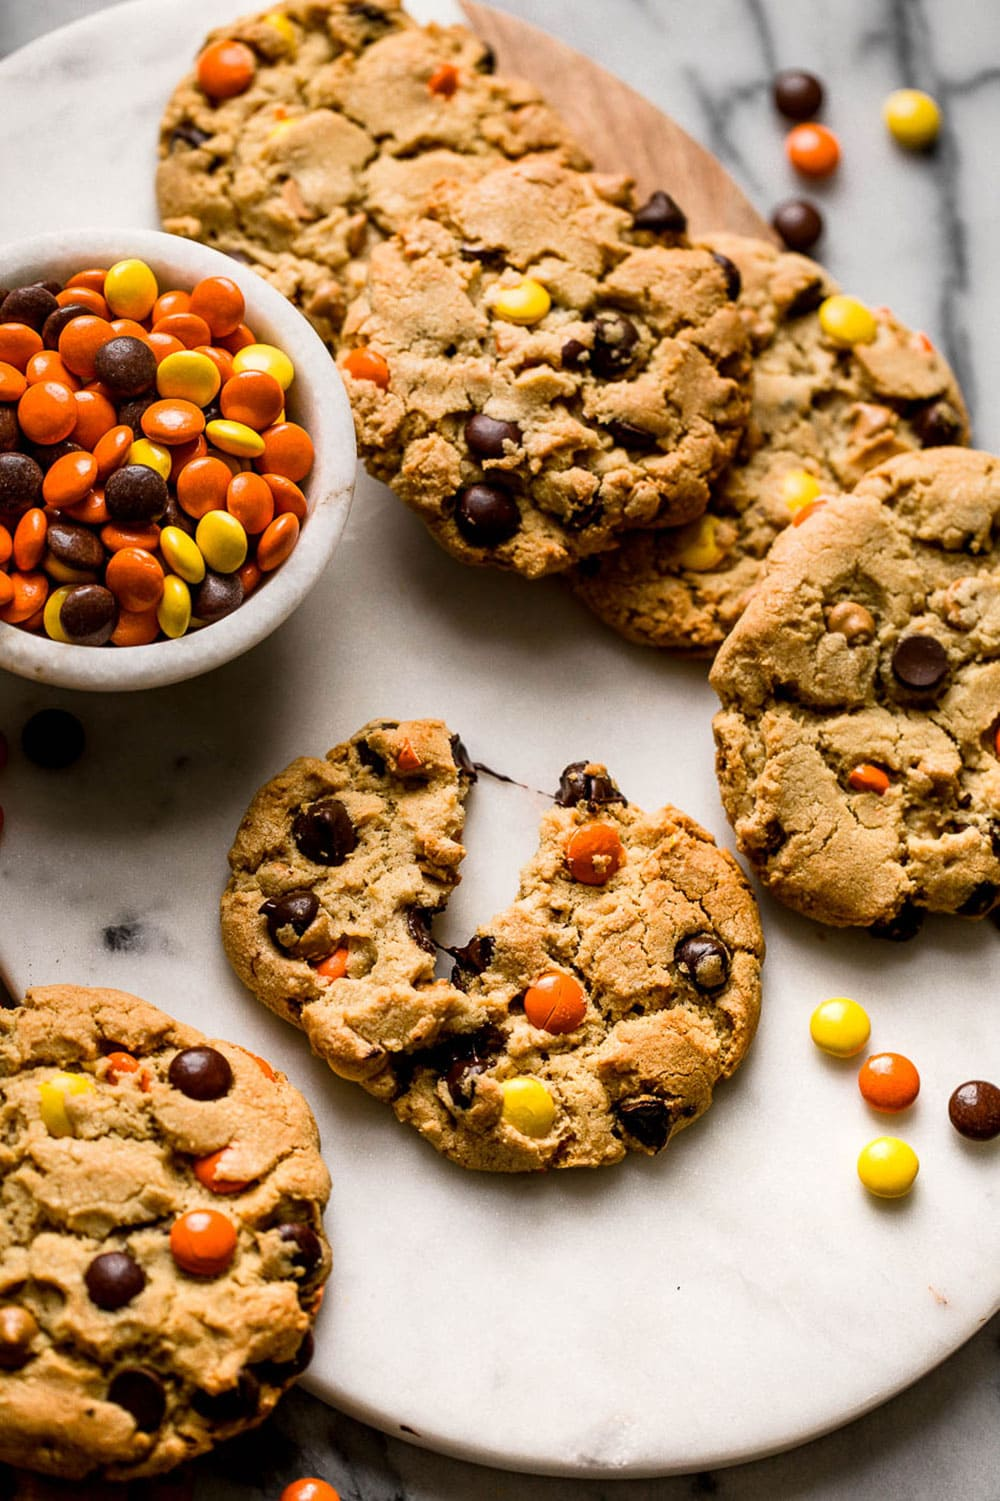 Giant Reese's Pieces Chocolate Chip Cookies are thick, chewy, chunky, and soft. Another incredible combination of peanut butter and chocolate!